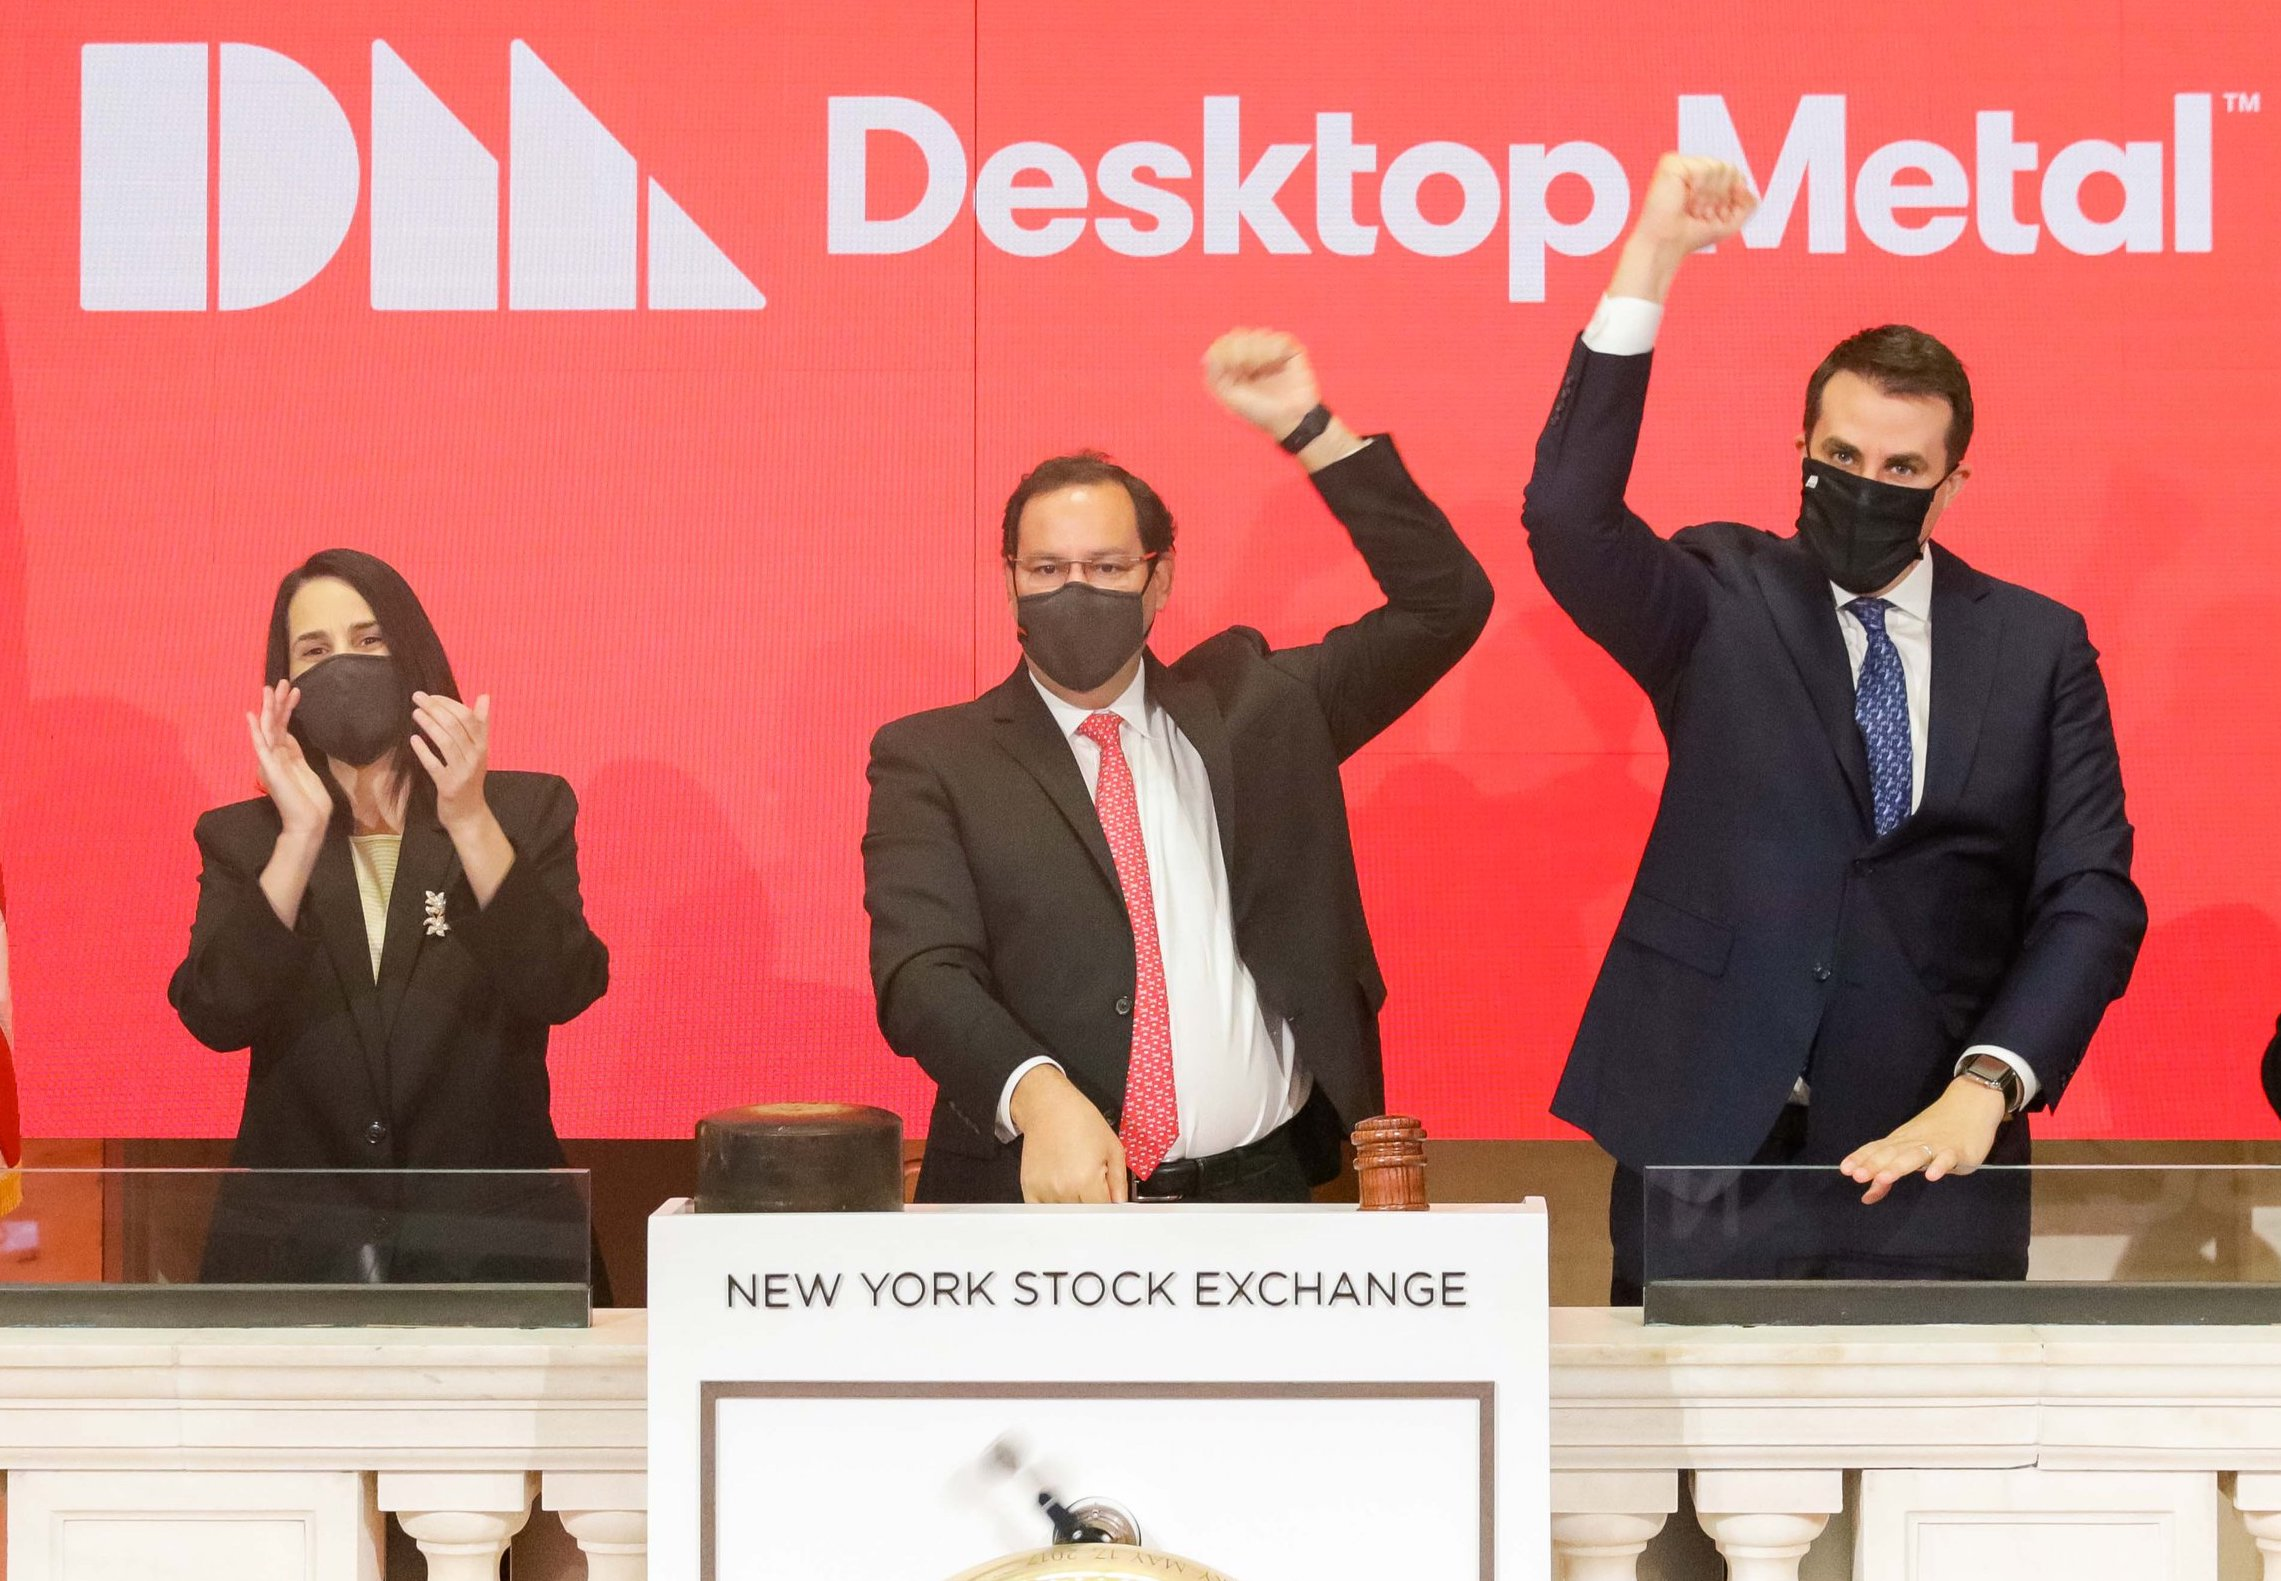 Following the conclusion of its merger with Trine, Desktop Metal has now gone live on the NYSE. Photo via Desktop Metal.